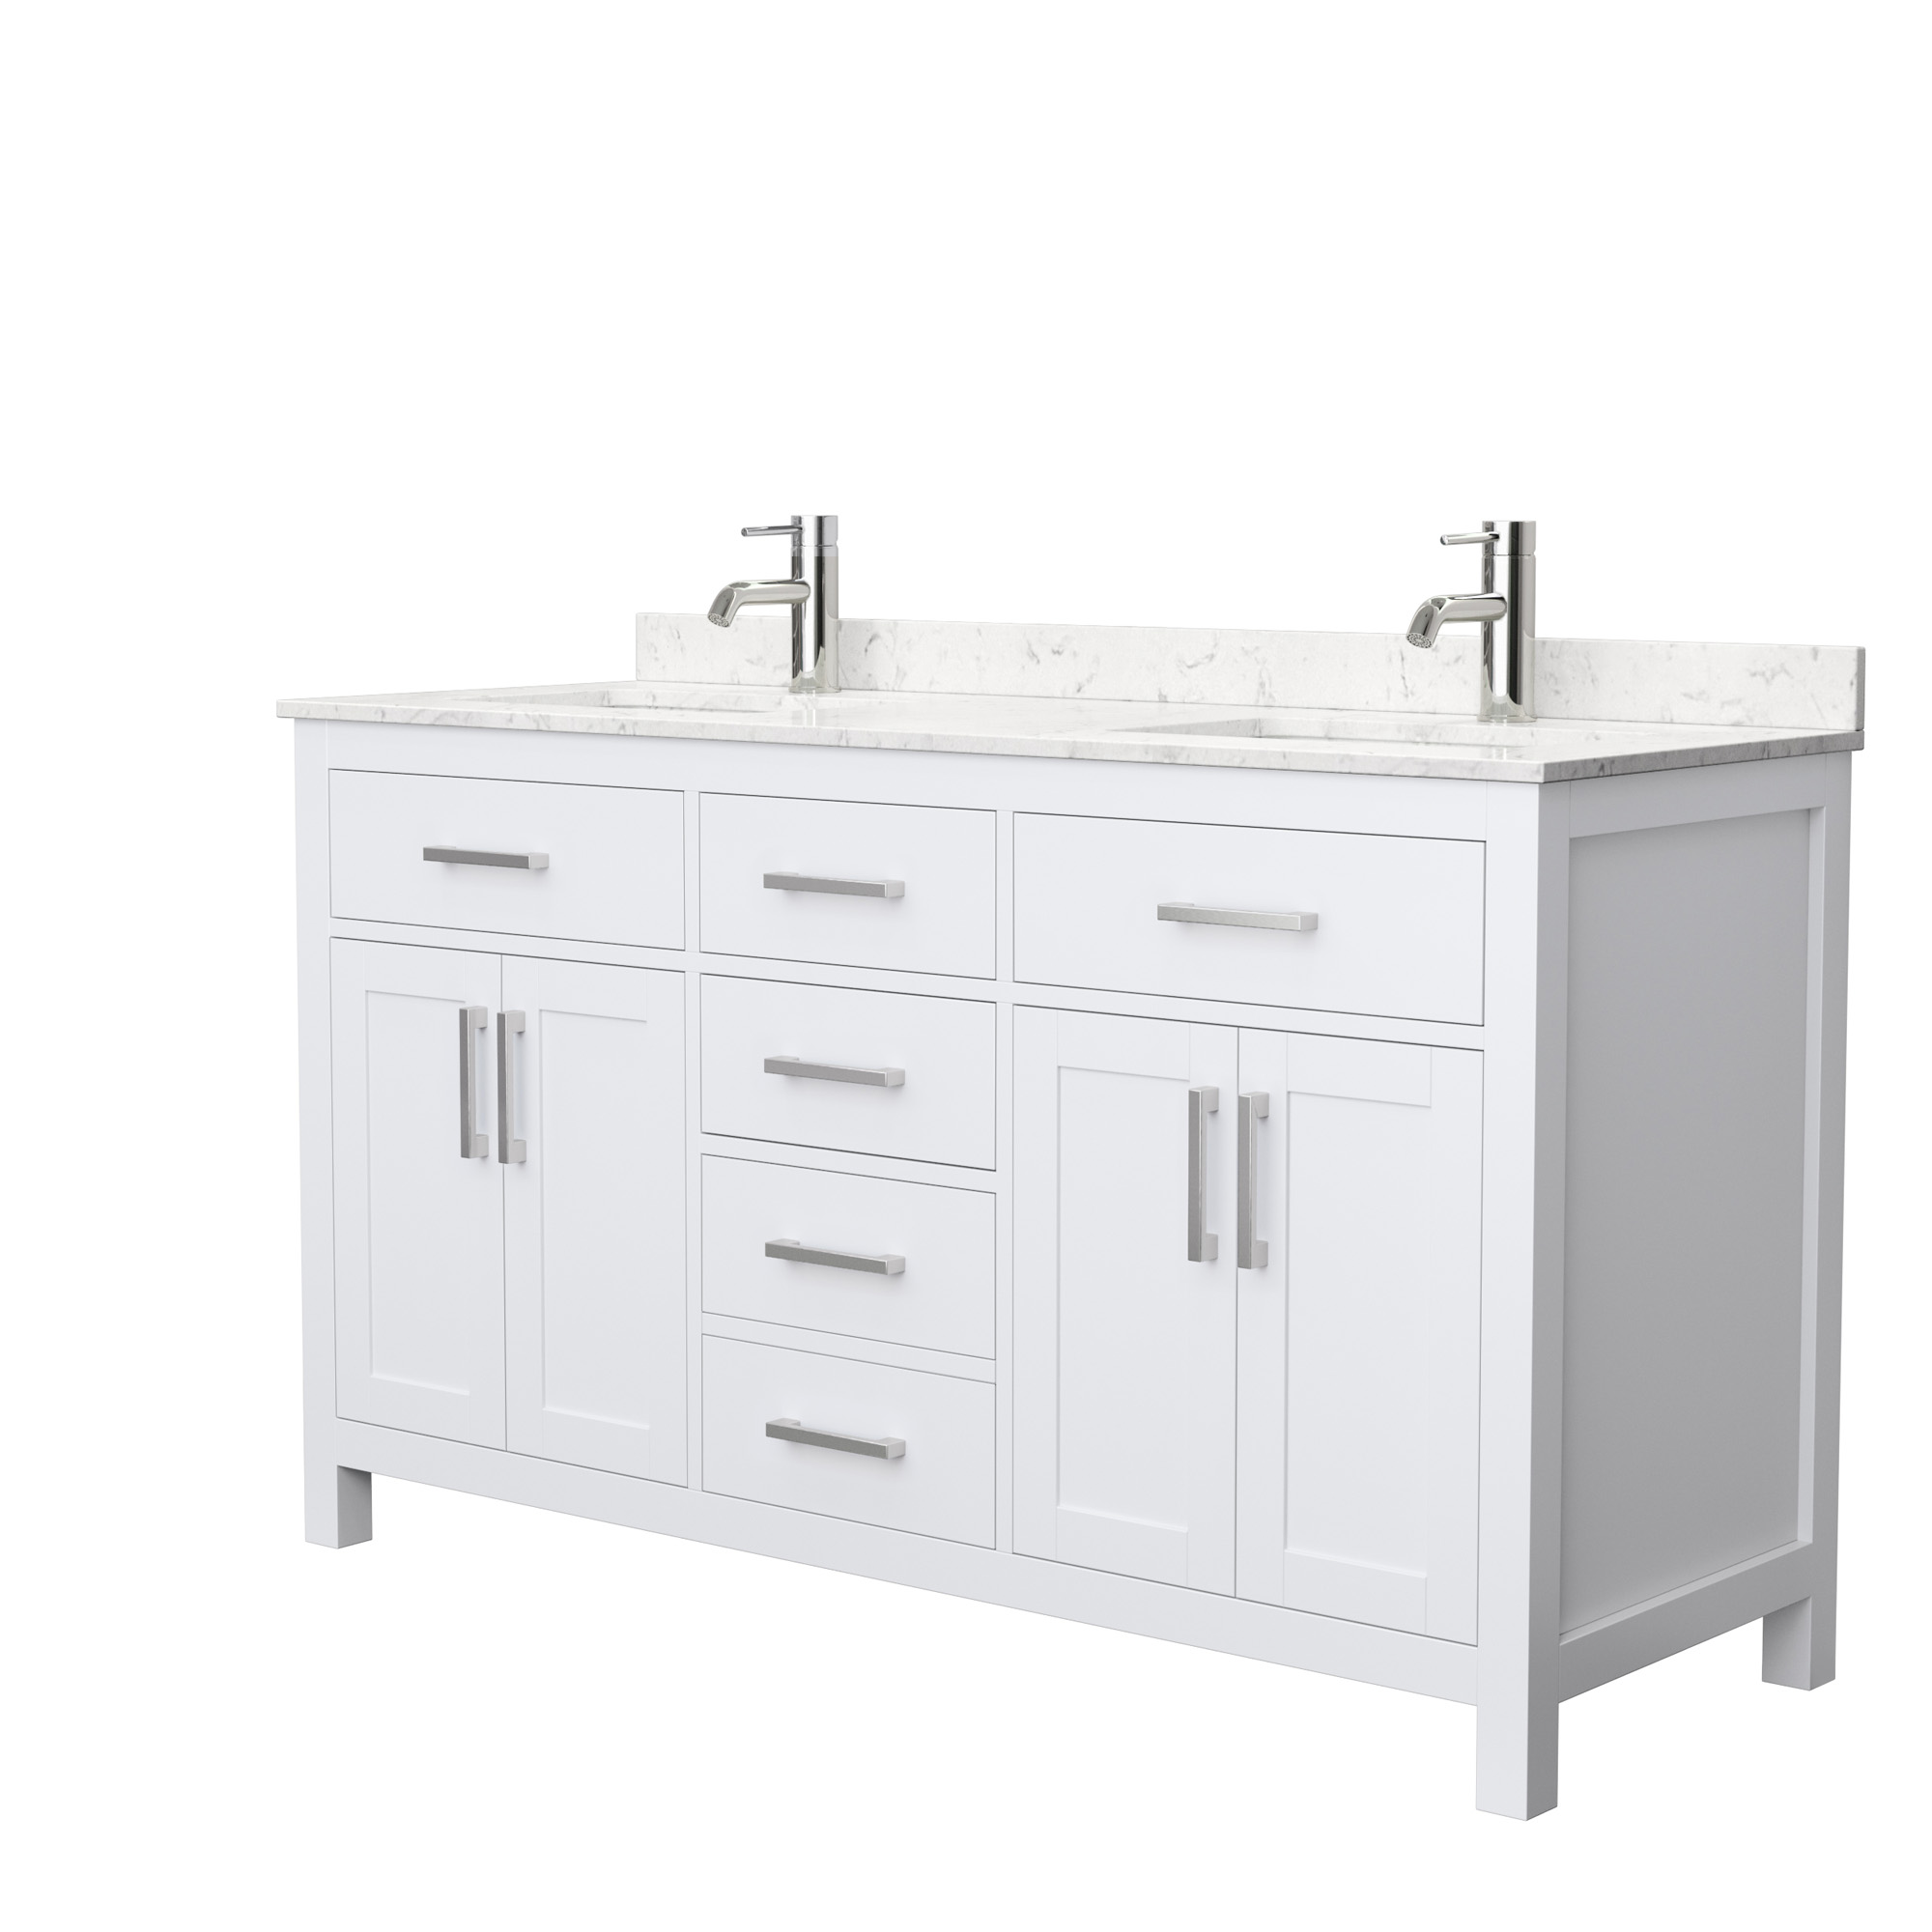 Beckett 60 Double Bathroom Vanity White Beautiful Bathroom Furniture For Every Home Wyndham Collection